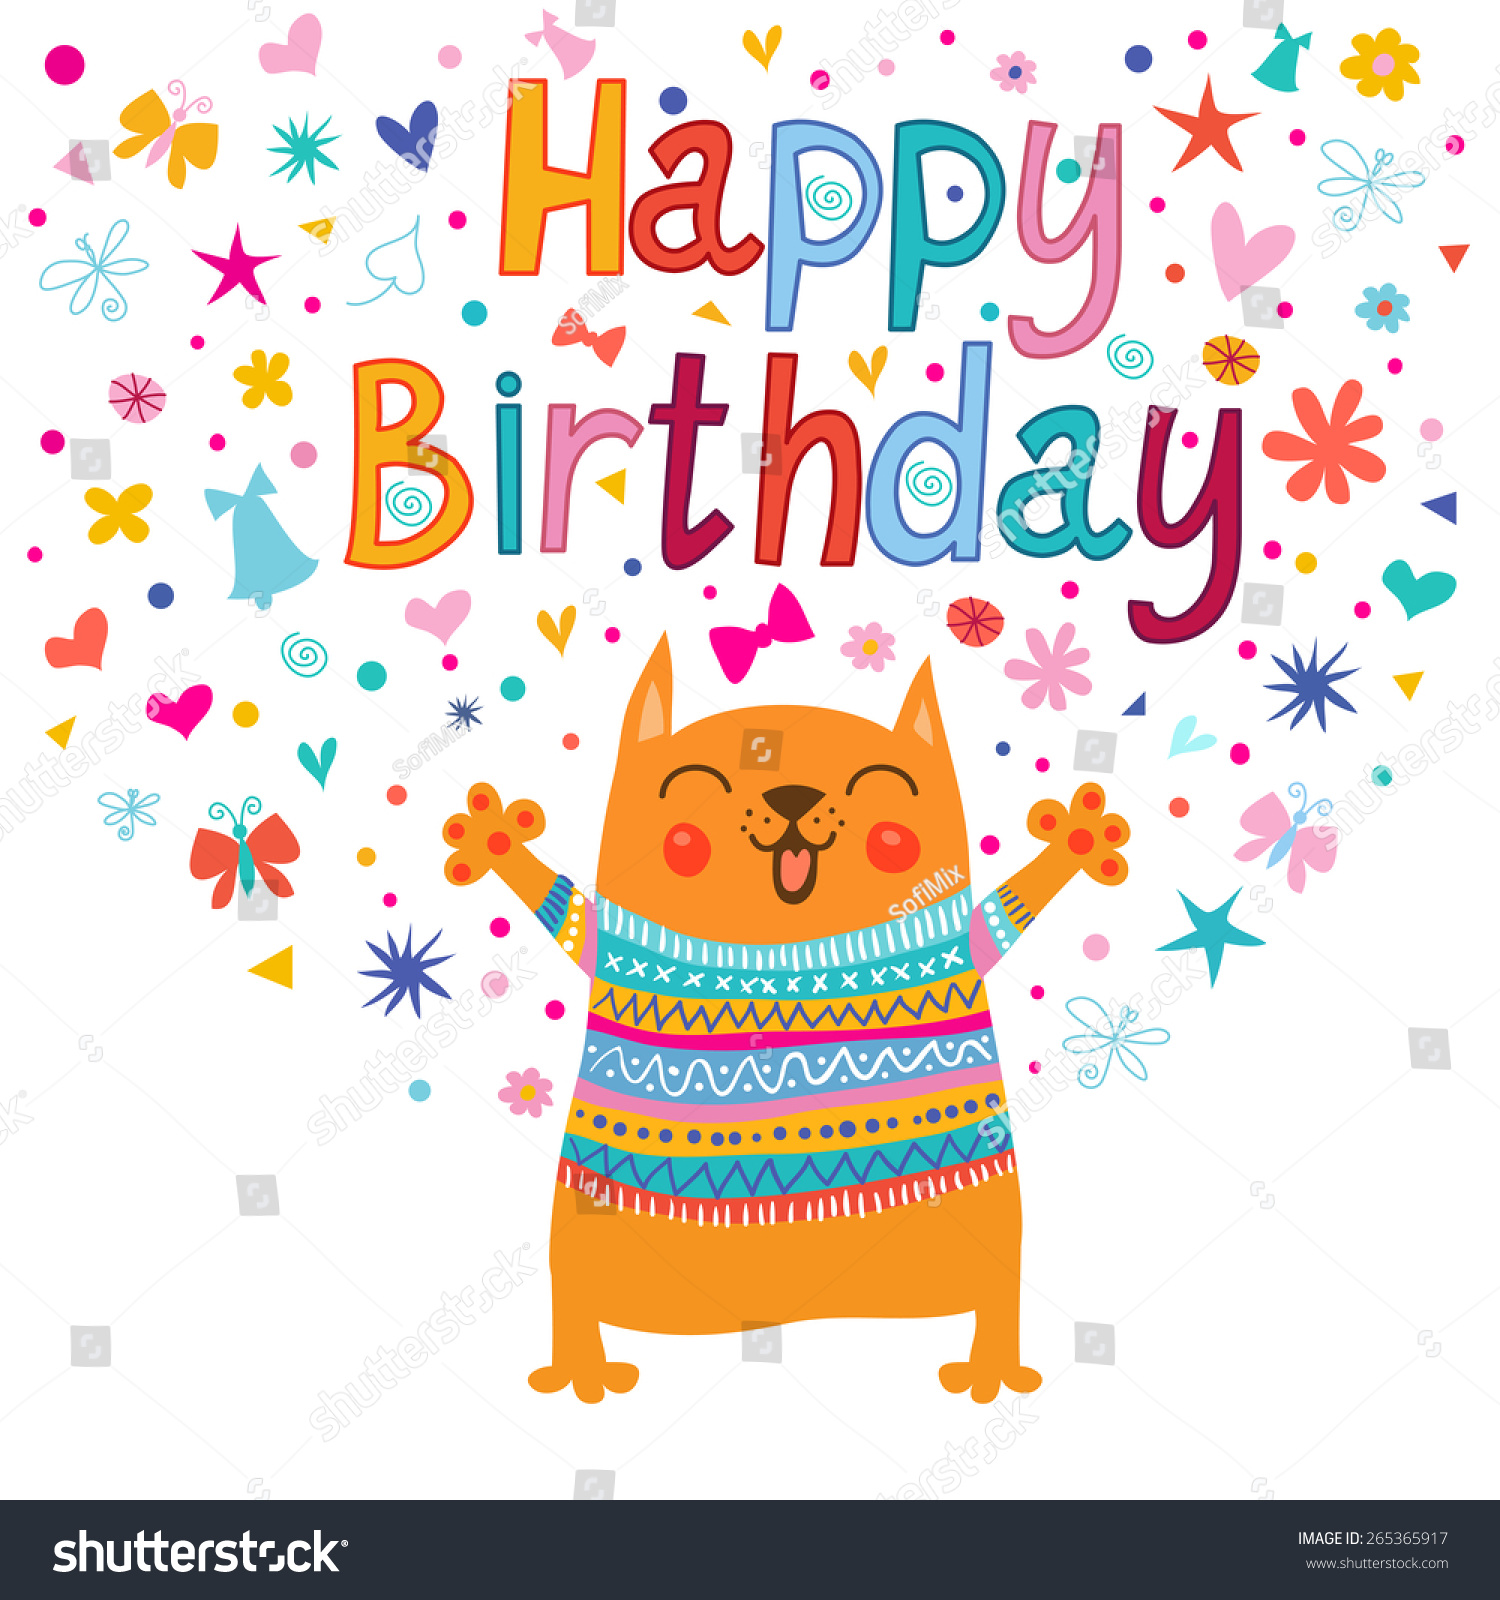 birthday greeting pictures funny ; stock-vector-birthday-greeting-with-funny-animals-265365917